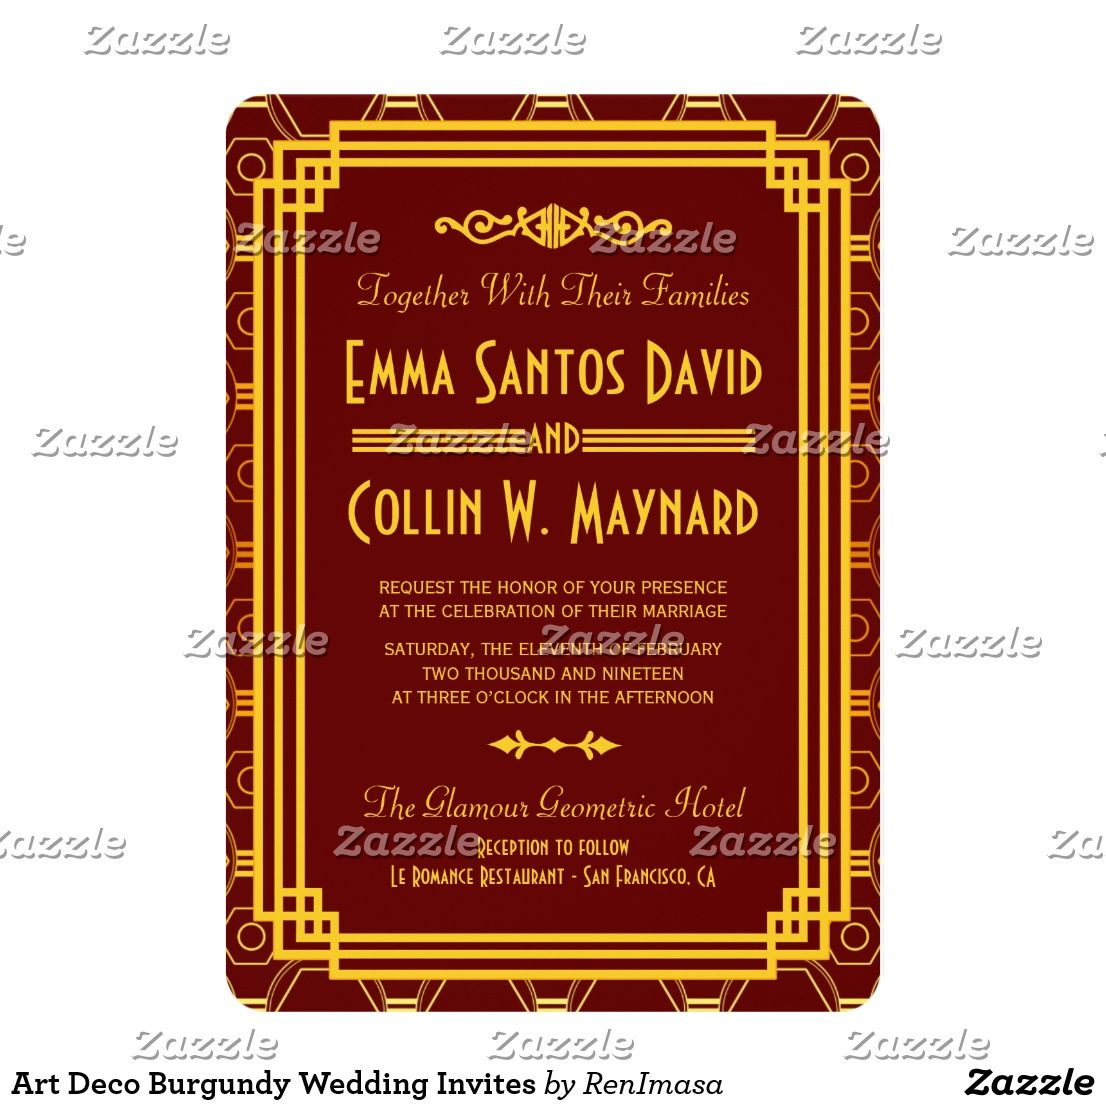 Art Deco Burgundy Wedding Invites | Burgundy wedding, Wedding and ...